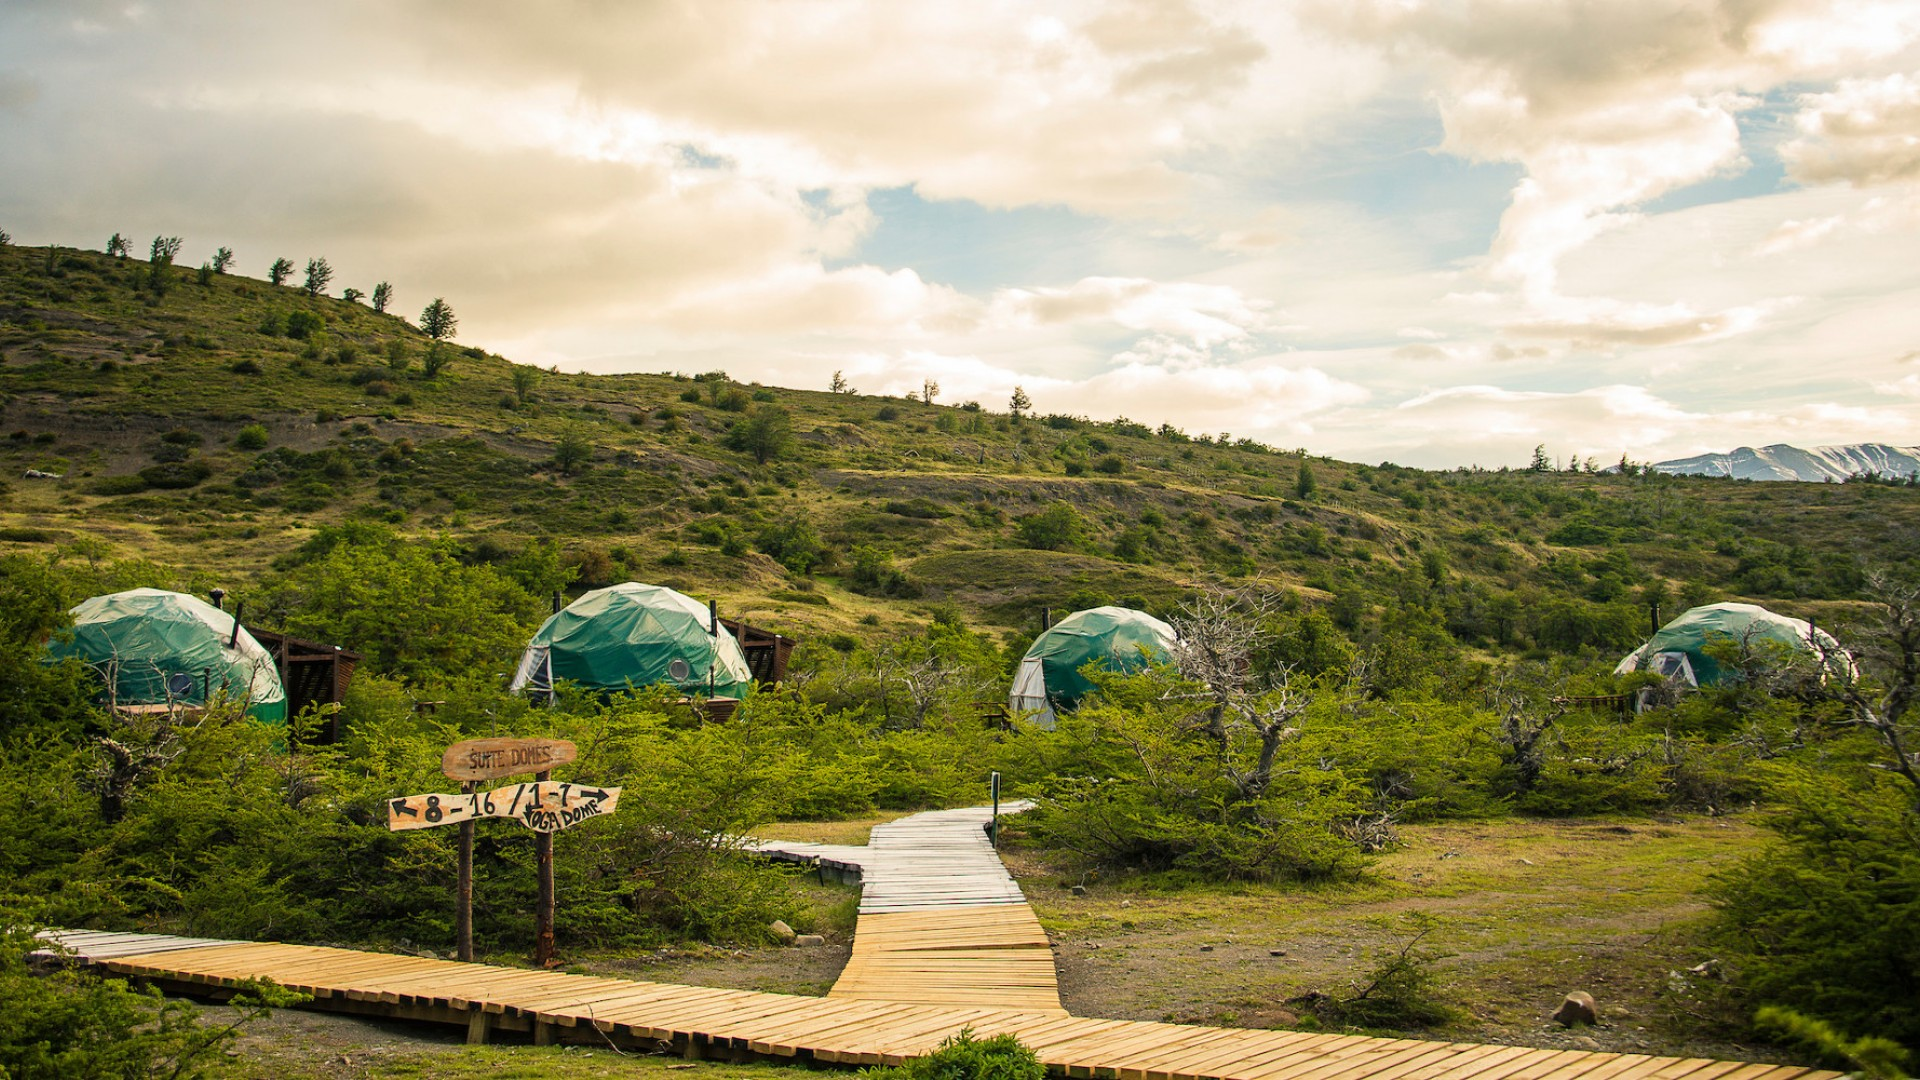 domes at ecocamp in torres del paine national park, patagonia